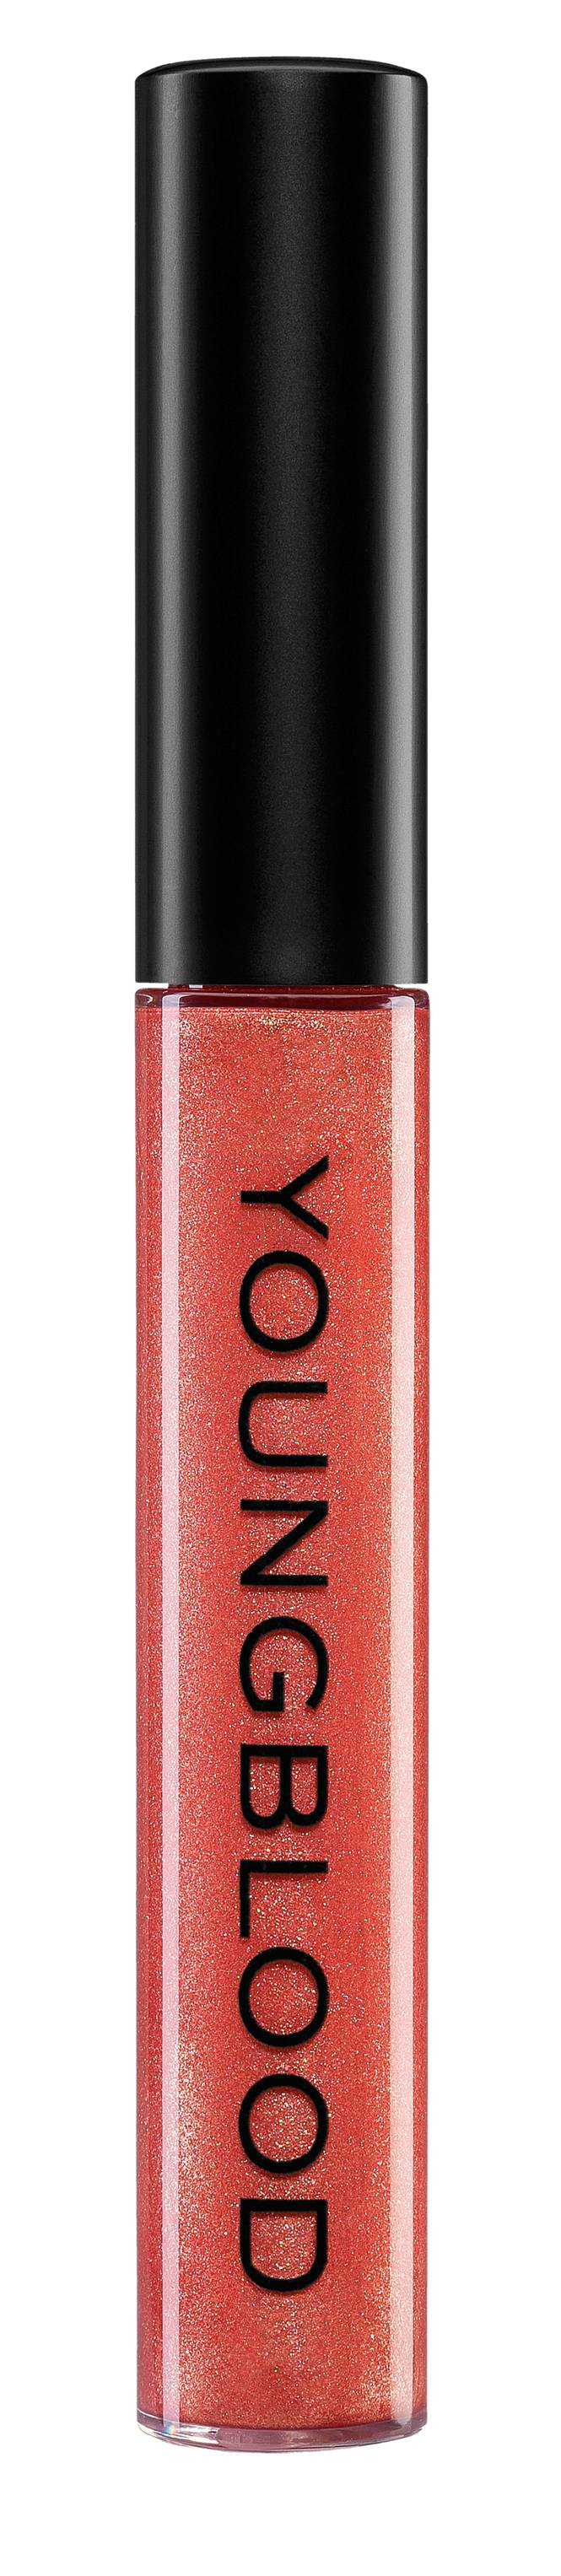 Youngblood Mineral Cosmetics Lipgloss